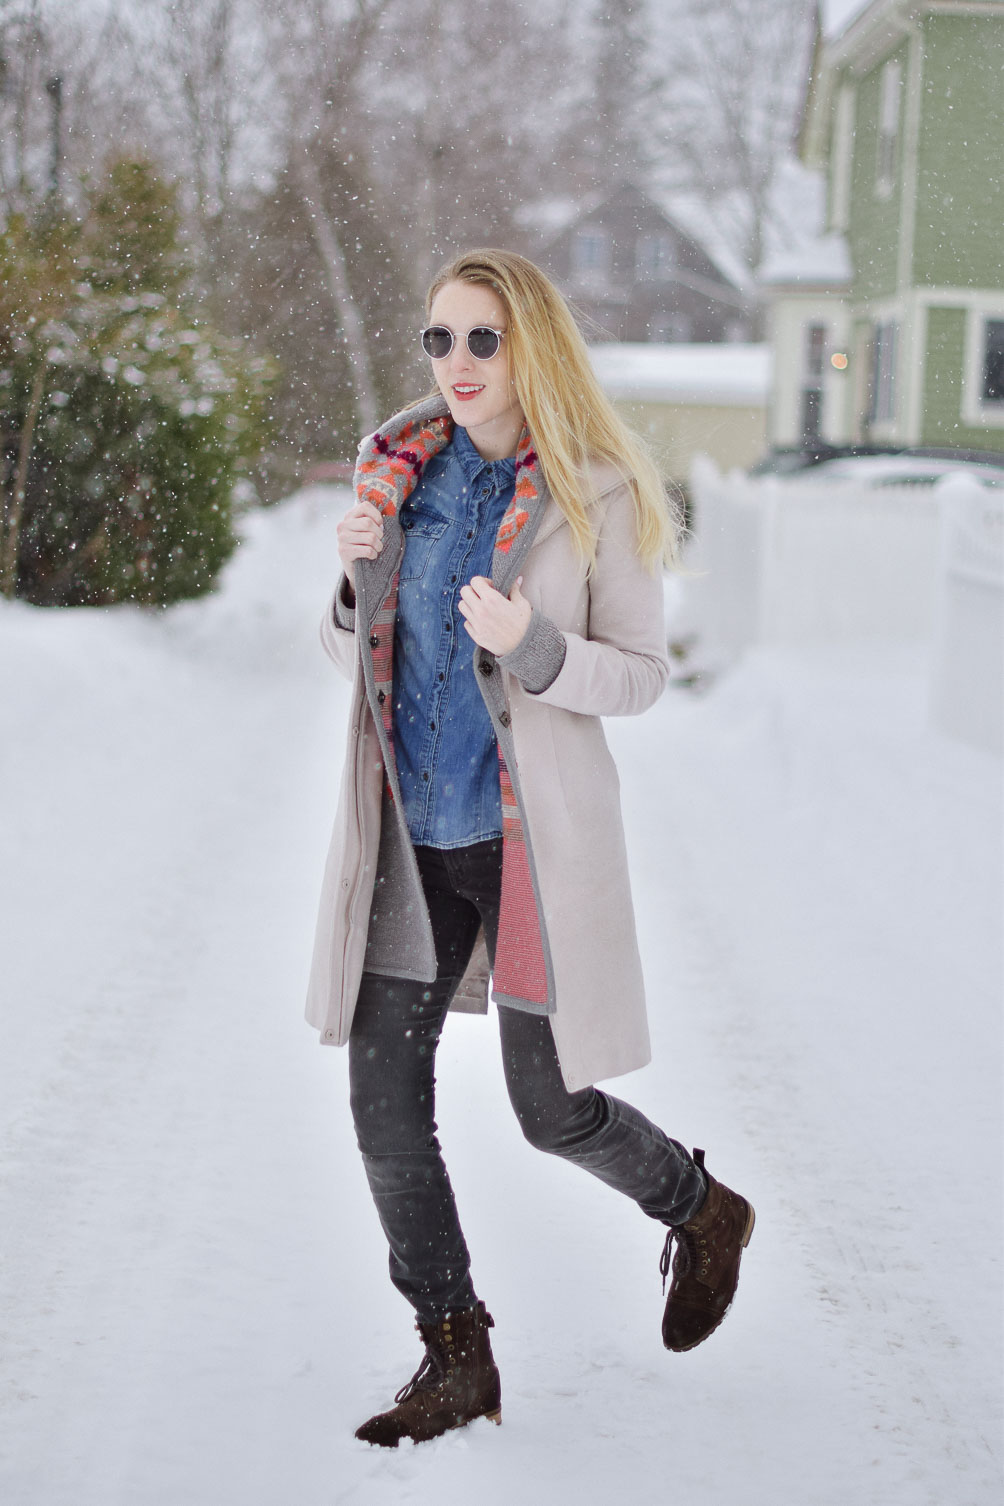 styling this cozy winter look with an aztec print sweater, chambray shirt, gray skinny jeans, and brown boots